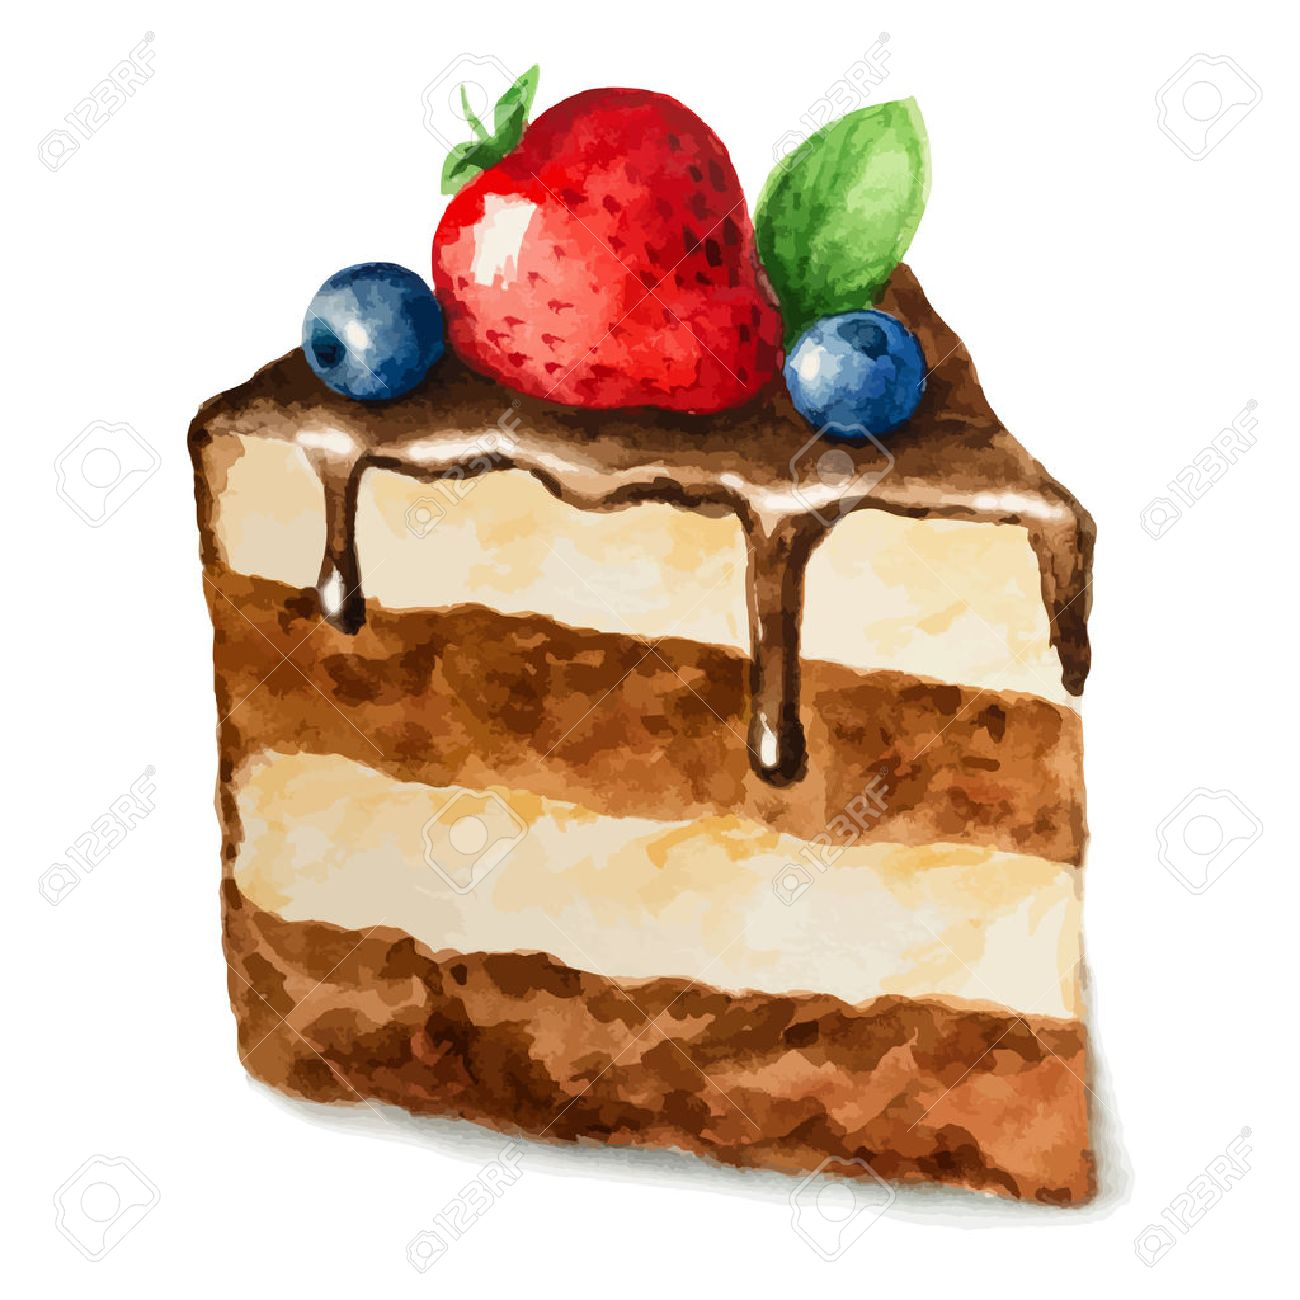 Vector watercolor pie, piece of cake. It can be used for card, postcard, birthday card, menu - 34800011